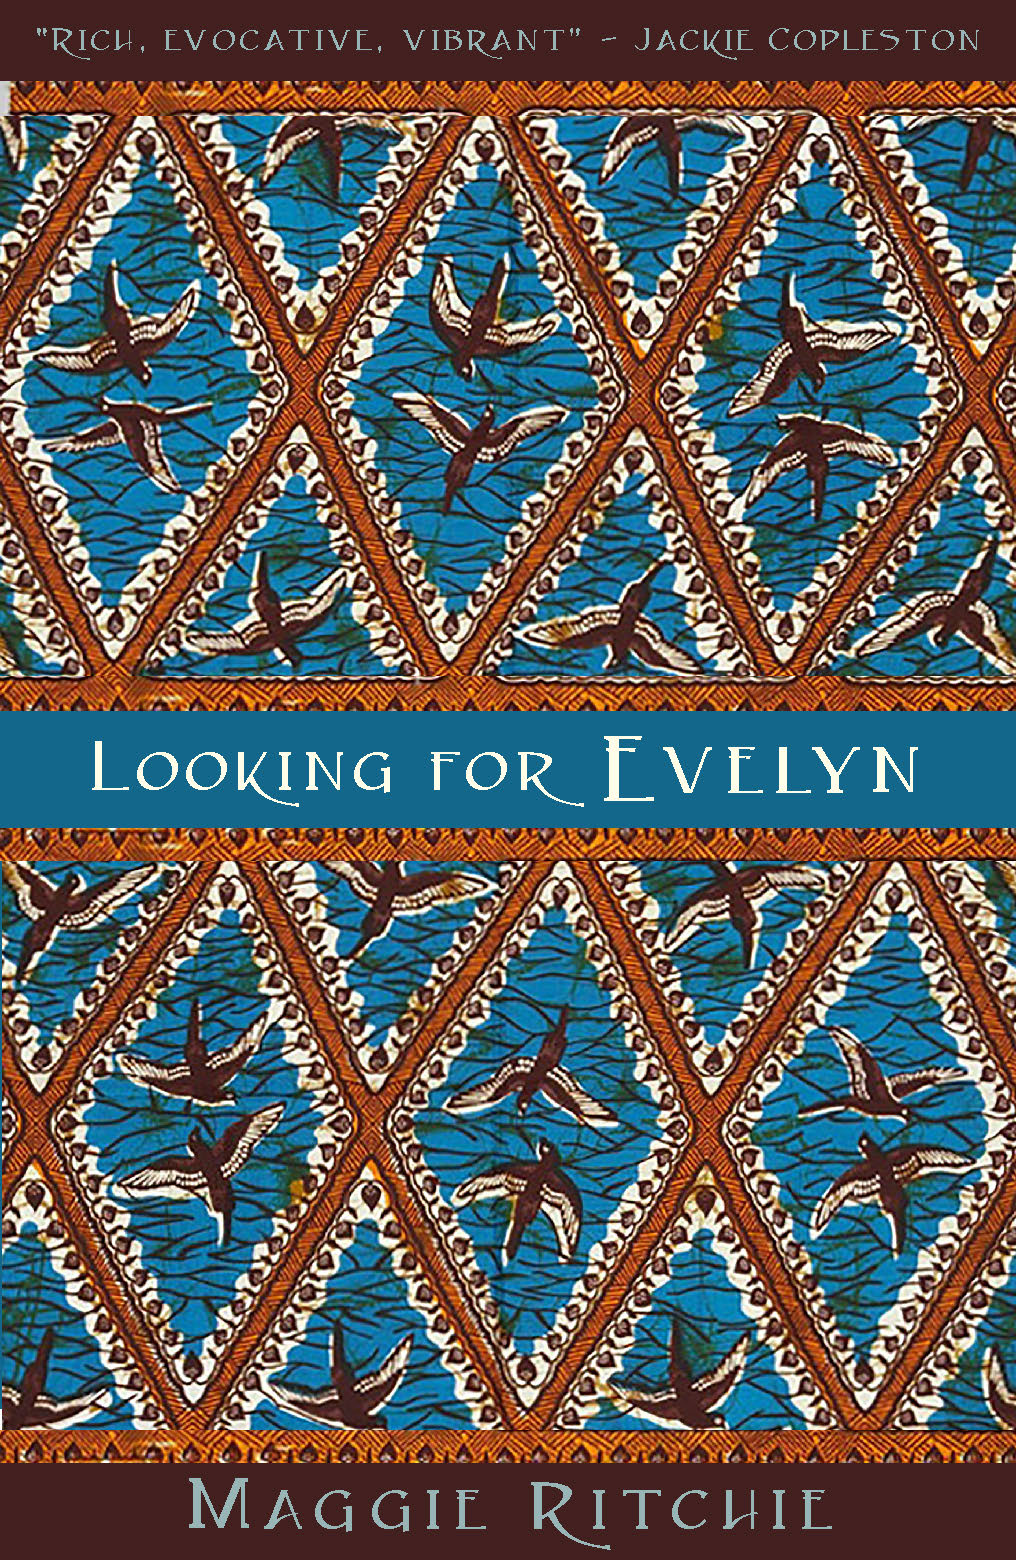 Looking for Evelyn